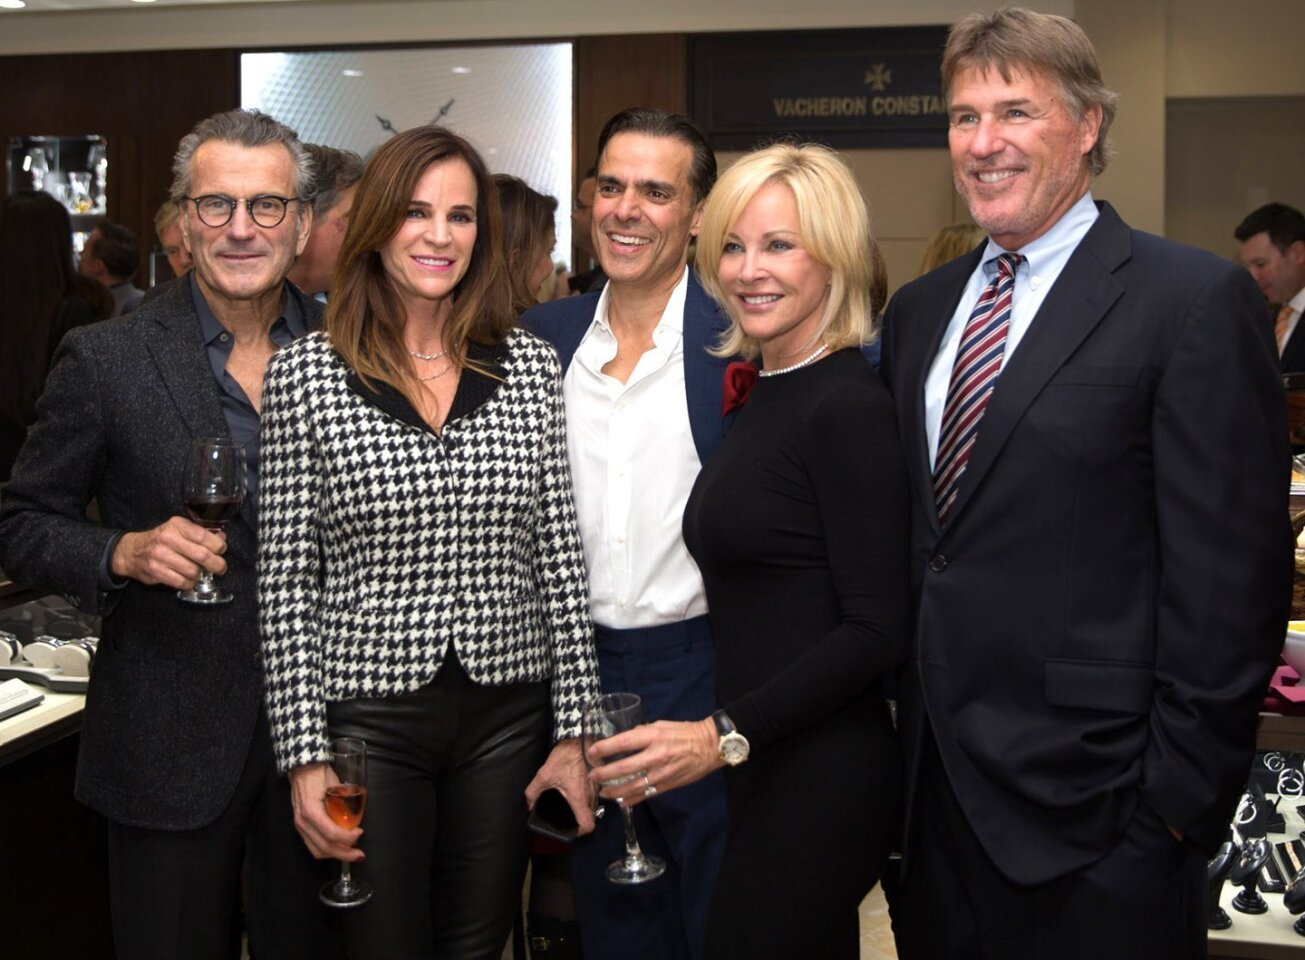 CJ Charles Jewelers president Vahid Moradi (center) with guests attend CJ Charles Jewelers' Holiday Party, Dec. 10, 2015 in La Jolla.